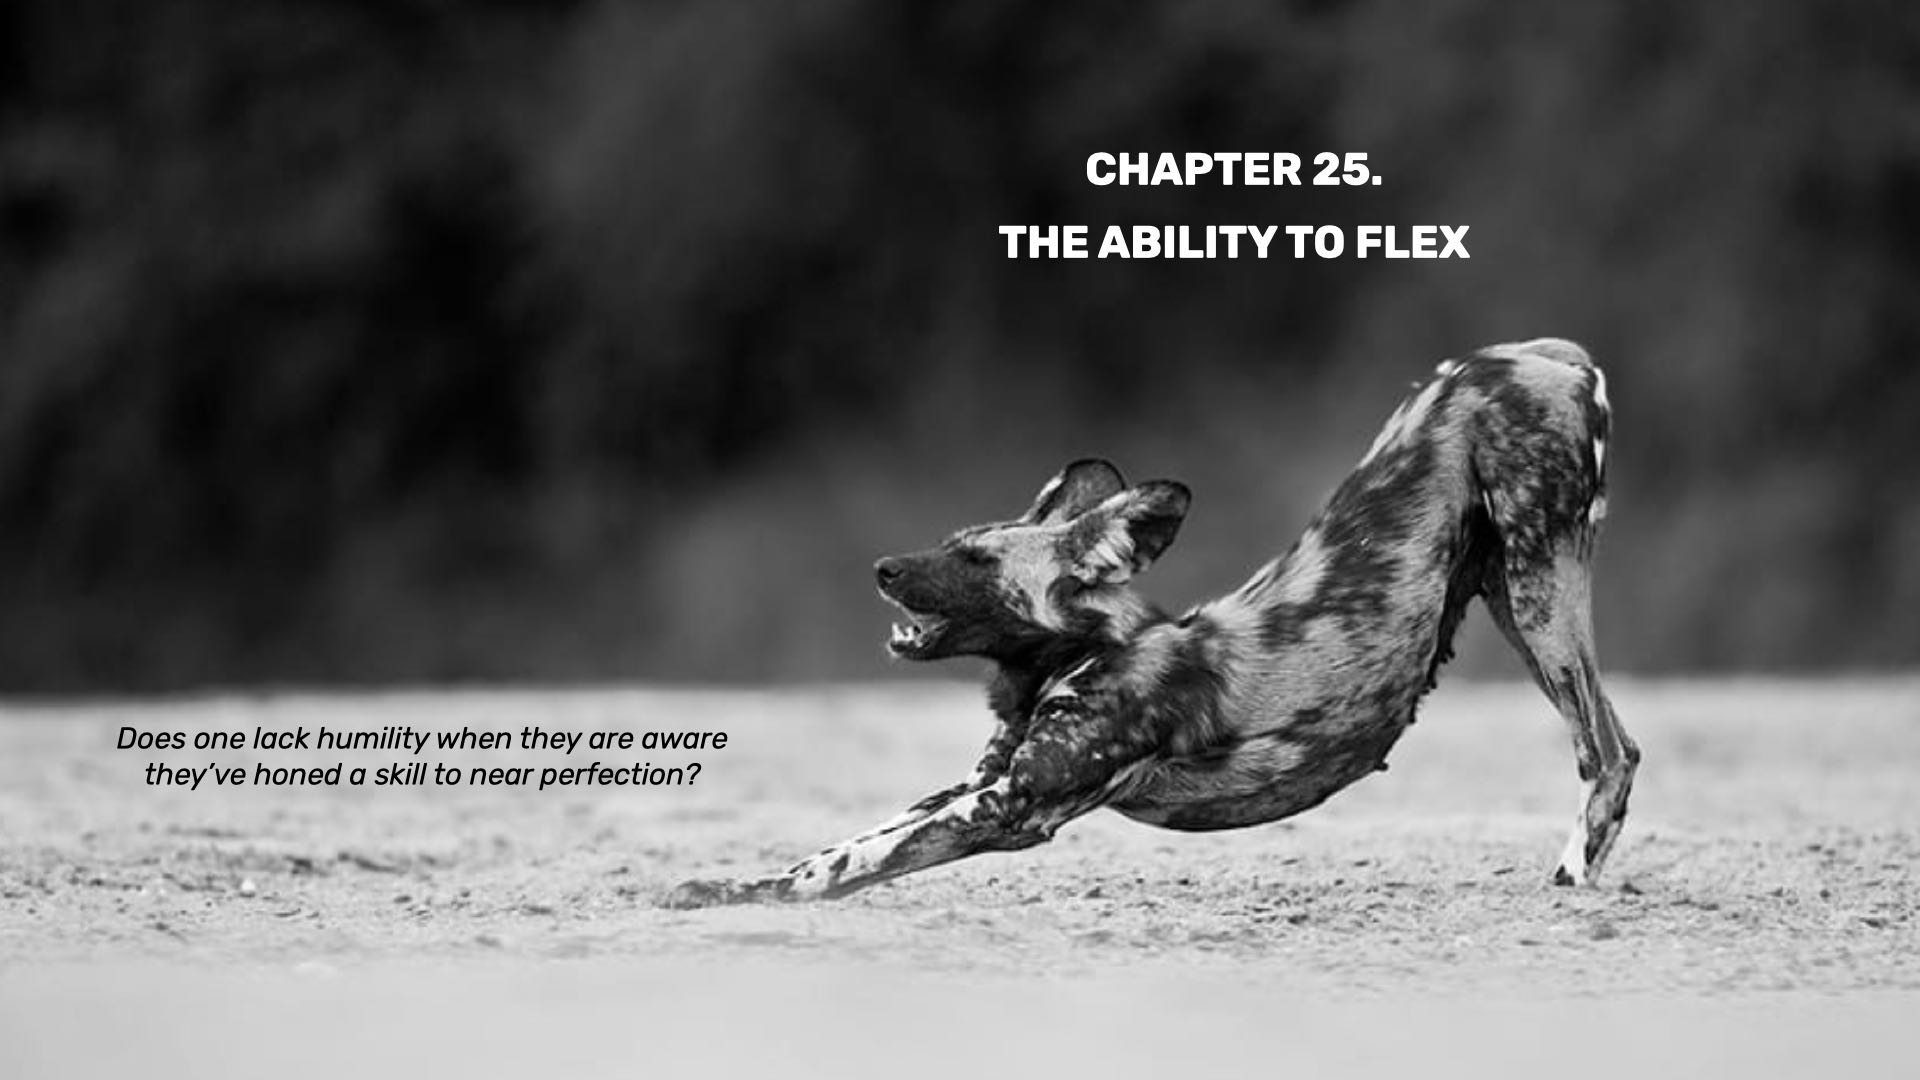 The Ability to Flex